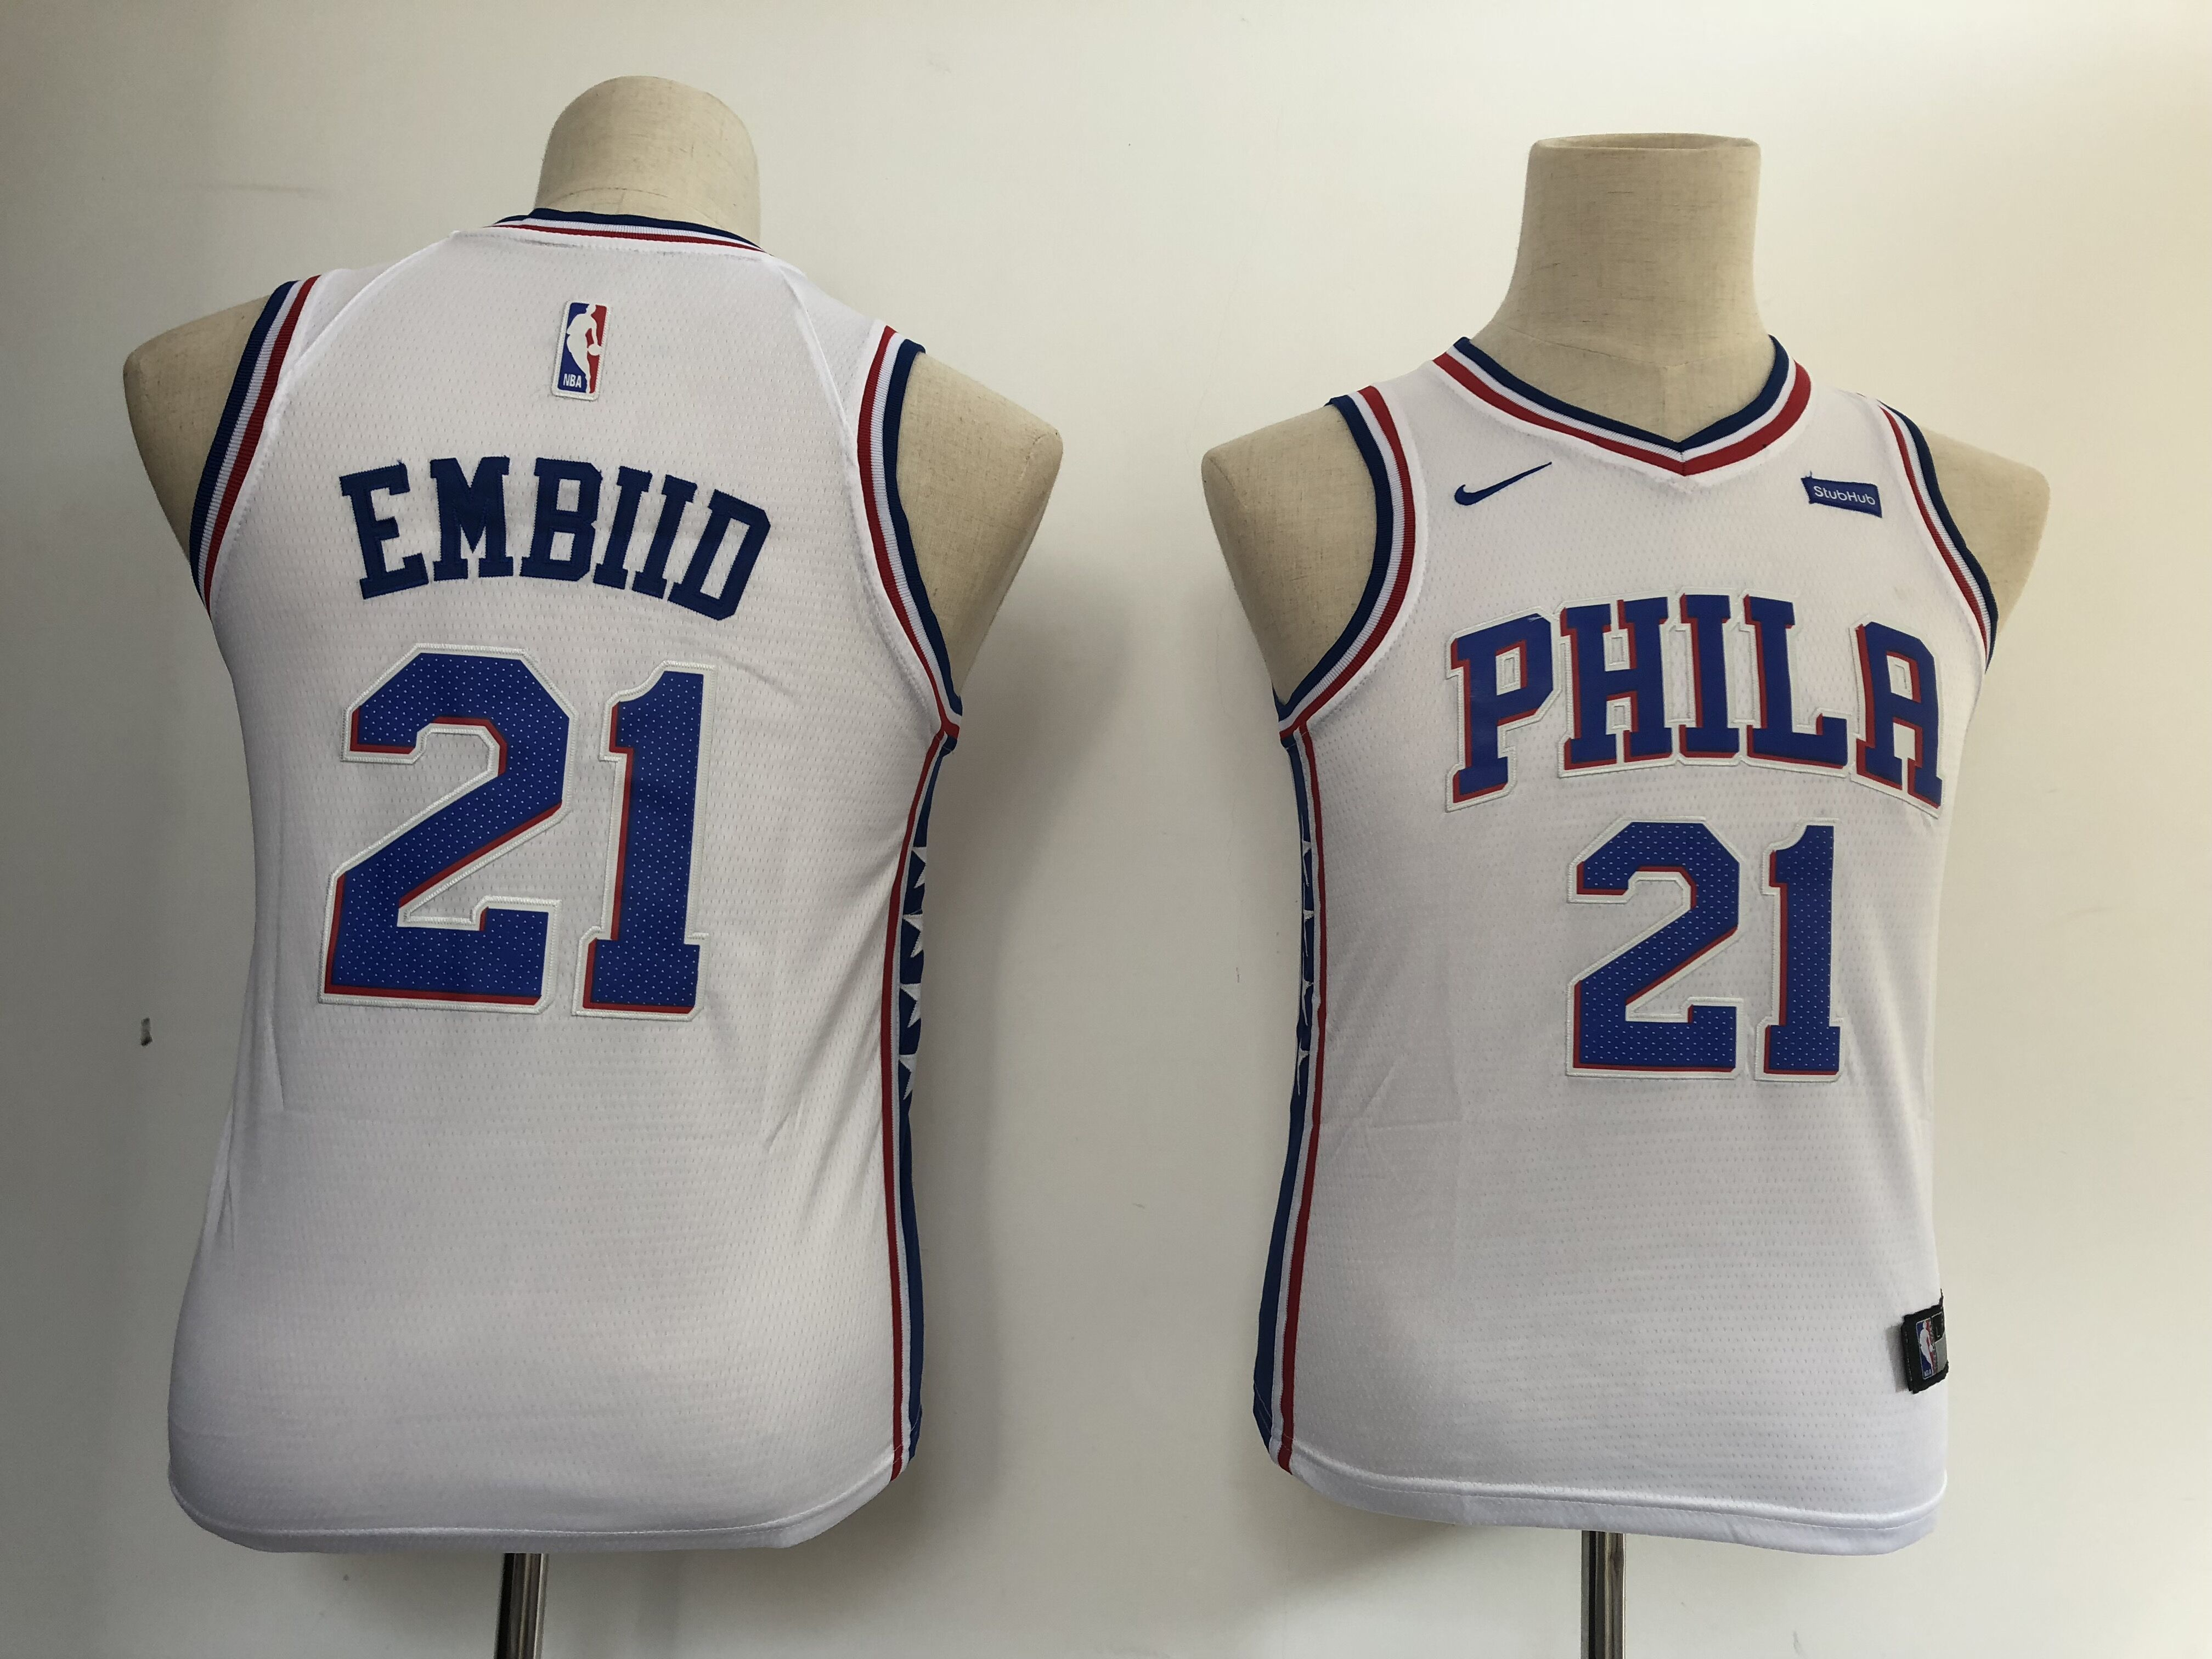 Youth Philadelphia 76ers 21 Embiid white Nike NBA Jerseys